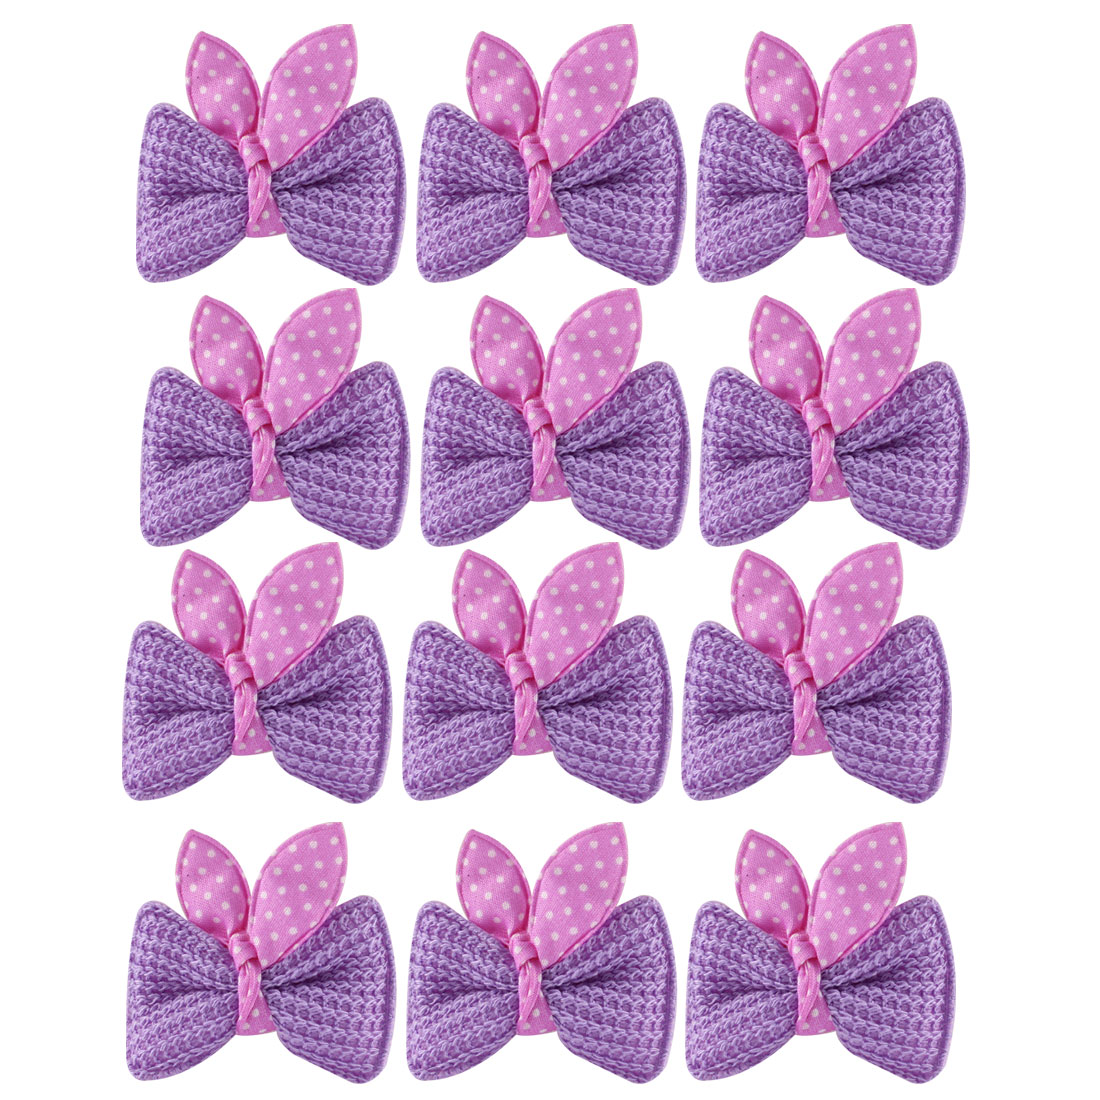 6 Pairs Boutique Hair Bows Girls Hairclip Headband Barrette Purple